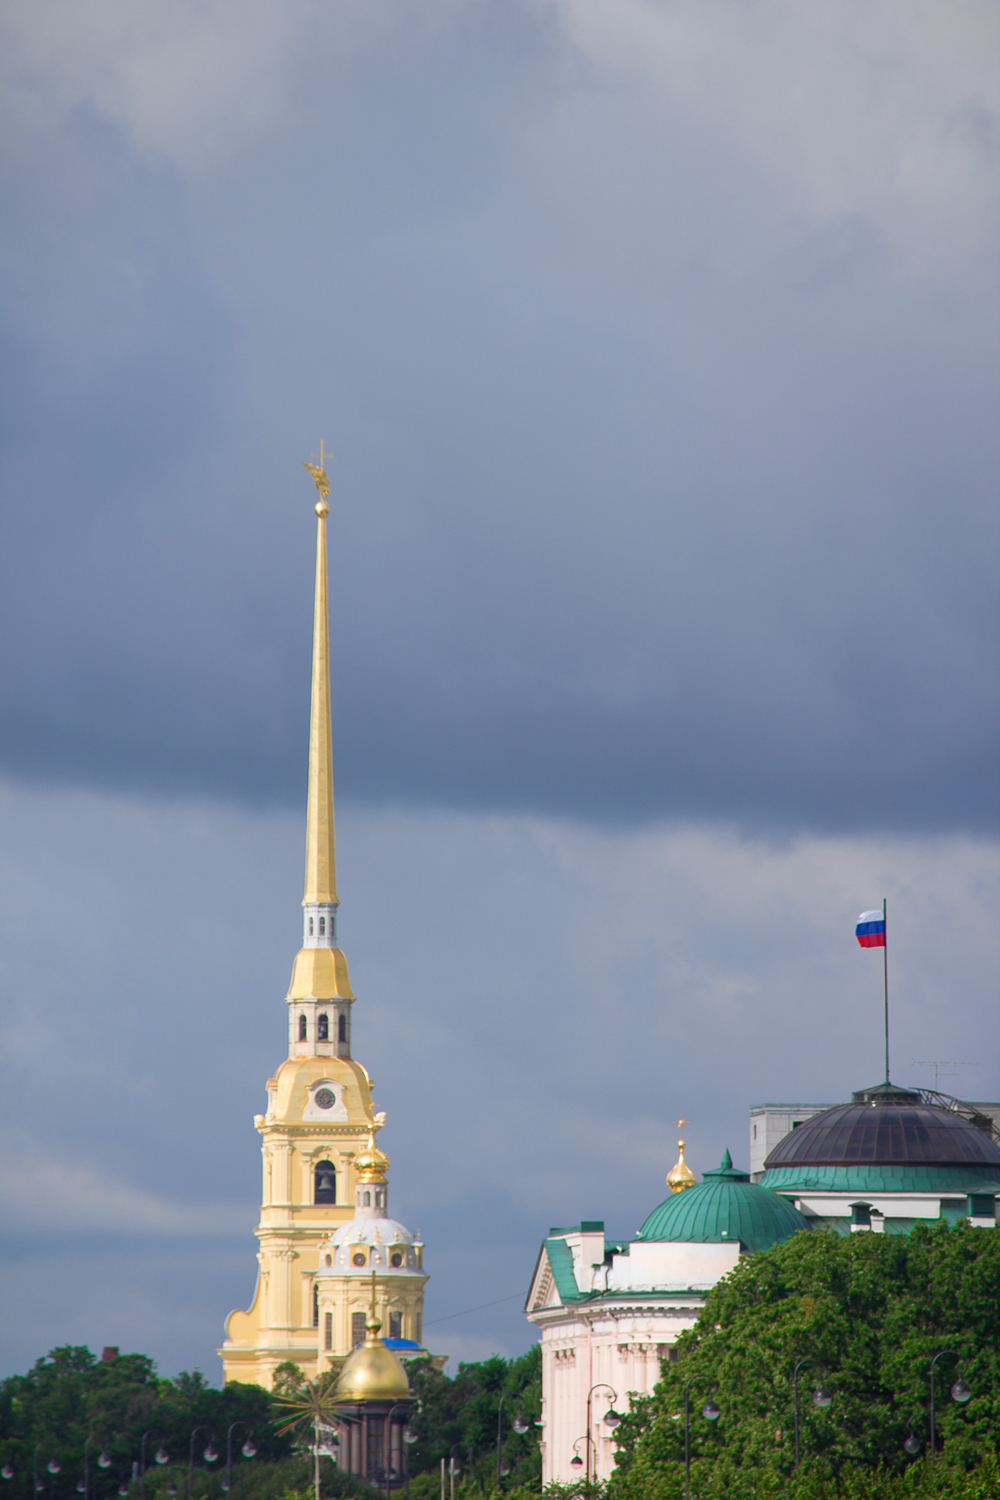 Cathedral spire, Skyline, Sky, Saint, Russia, HQ Photo